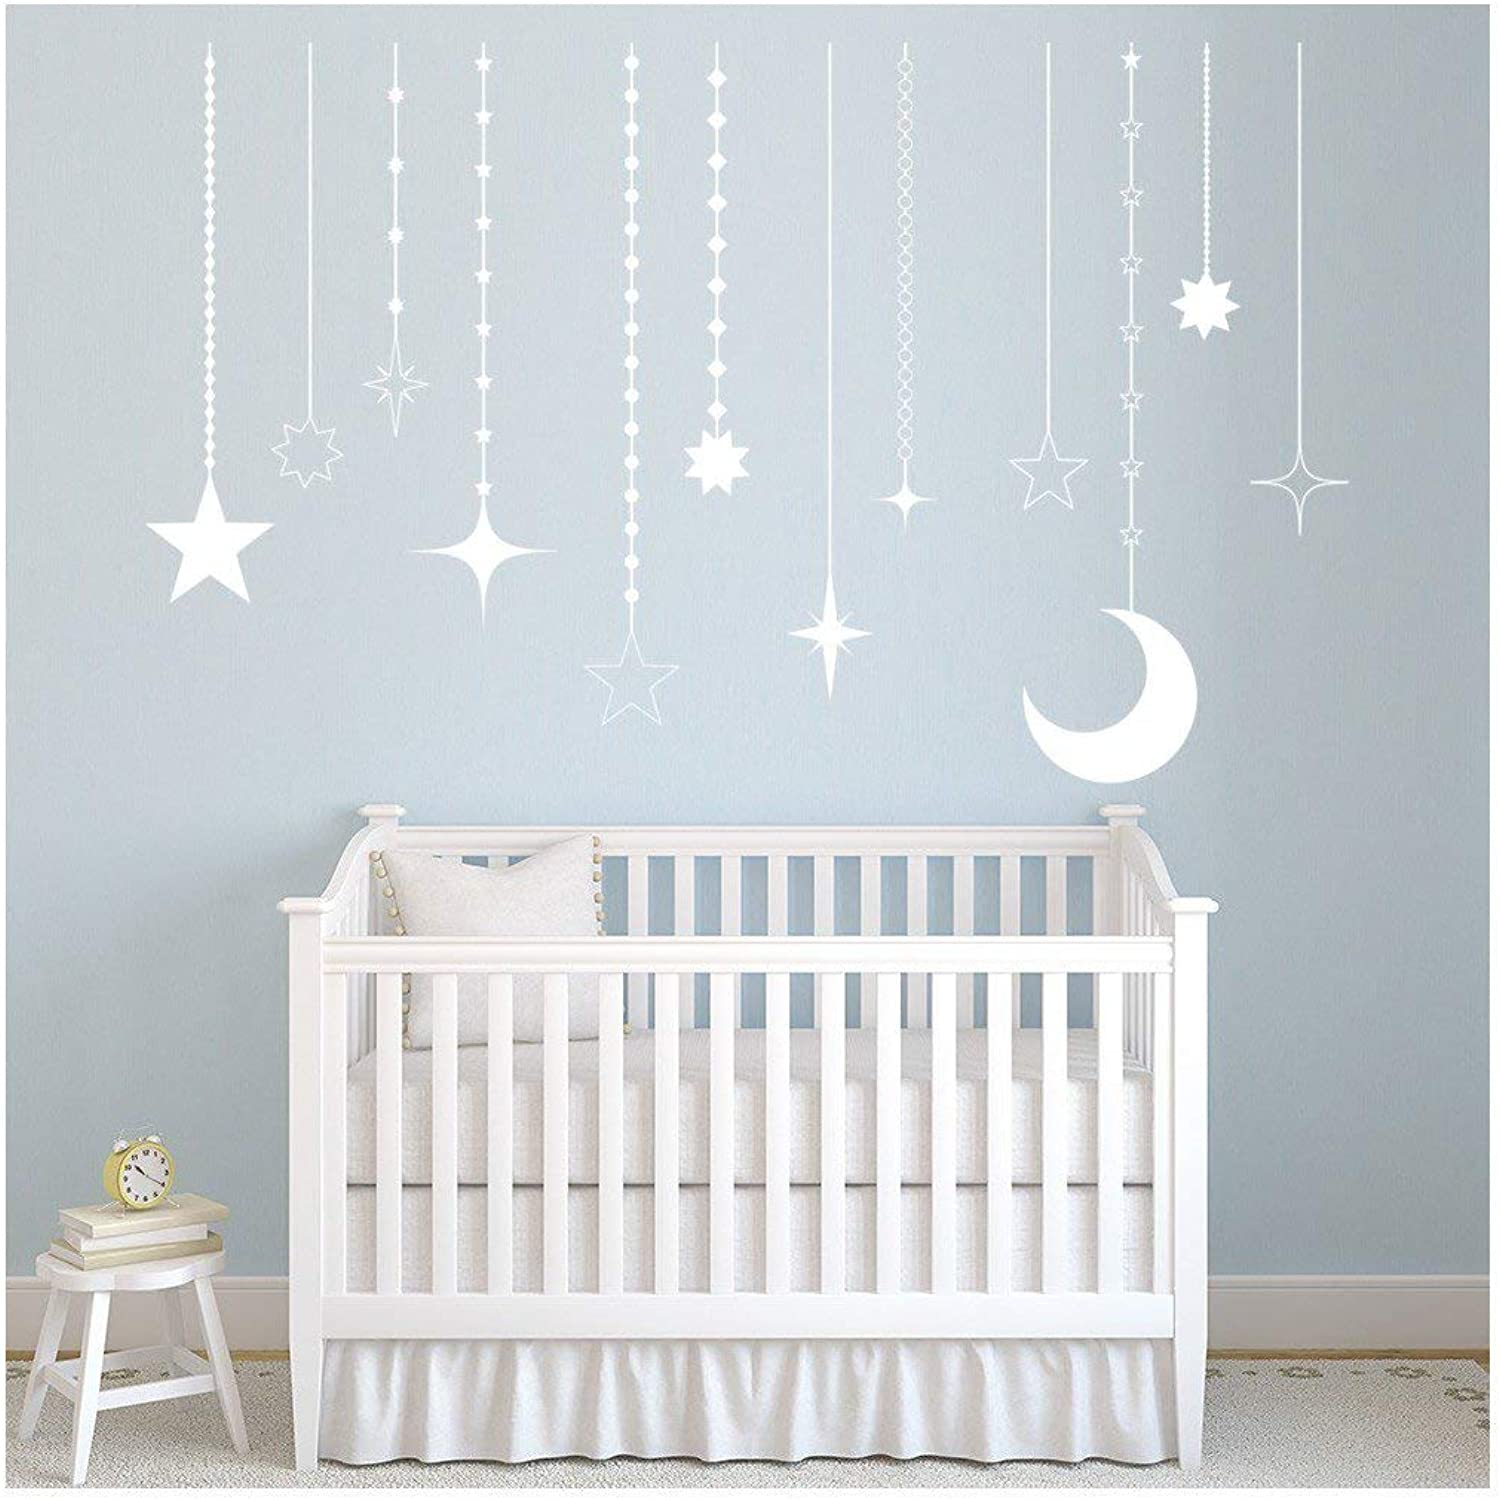 Hanging Stars Wall Sticker Moon Wall Decal Baby Nursery Home Decor available in 5 Sizes and 25 Colours Medium Ivory Beige